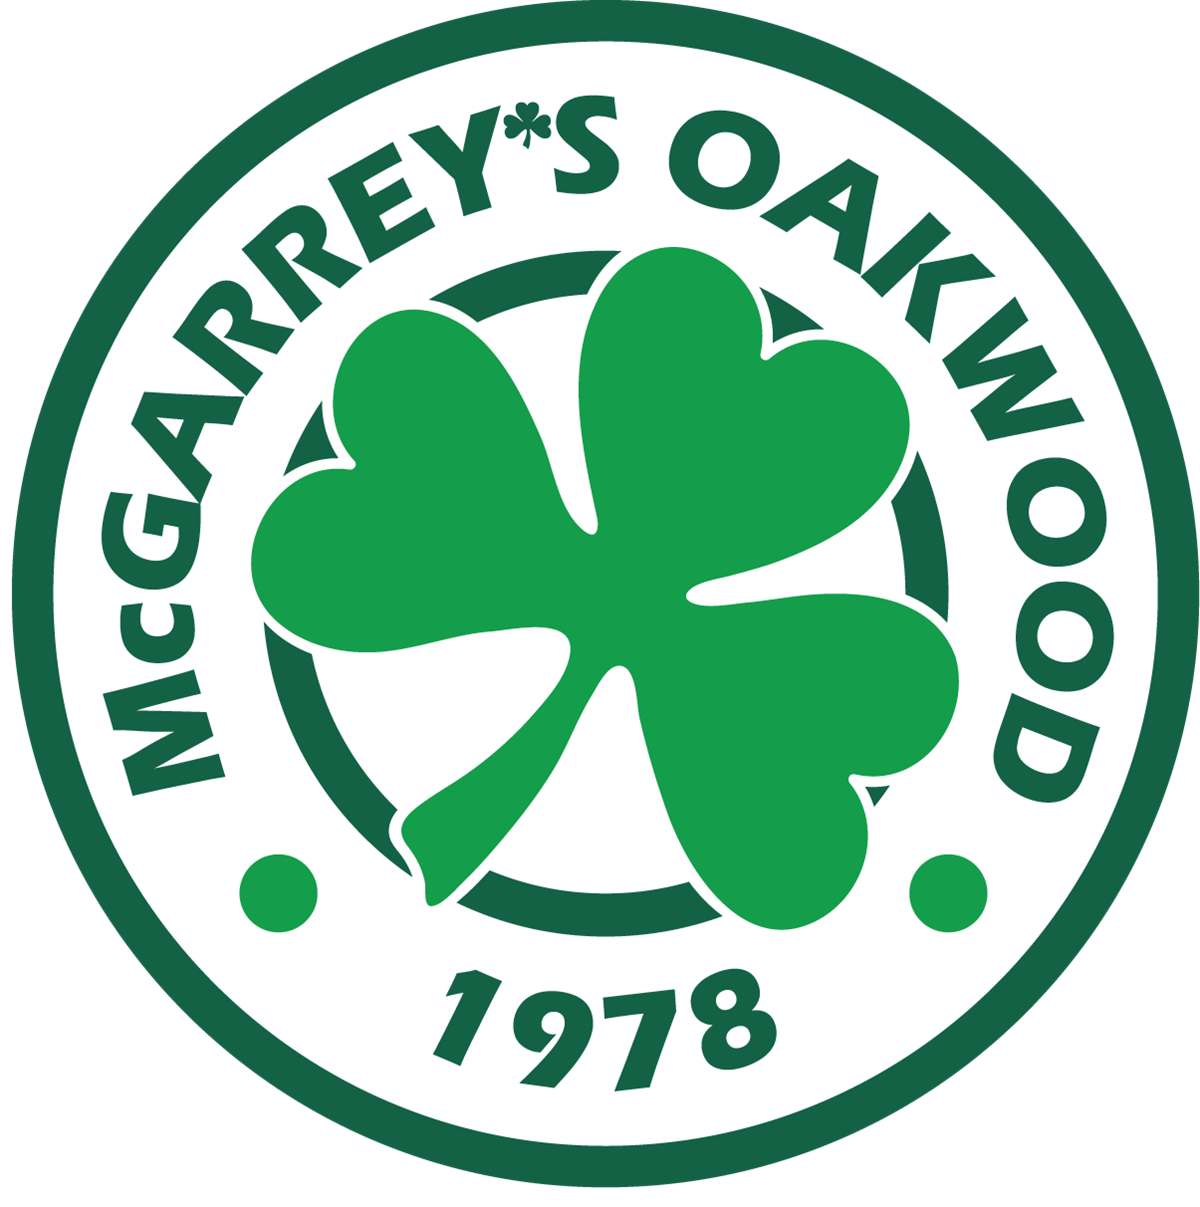 McGarrey's Oakwood Cafe - Voted Erie's Best Reuben!